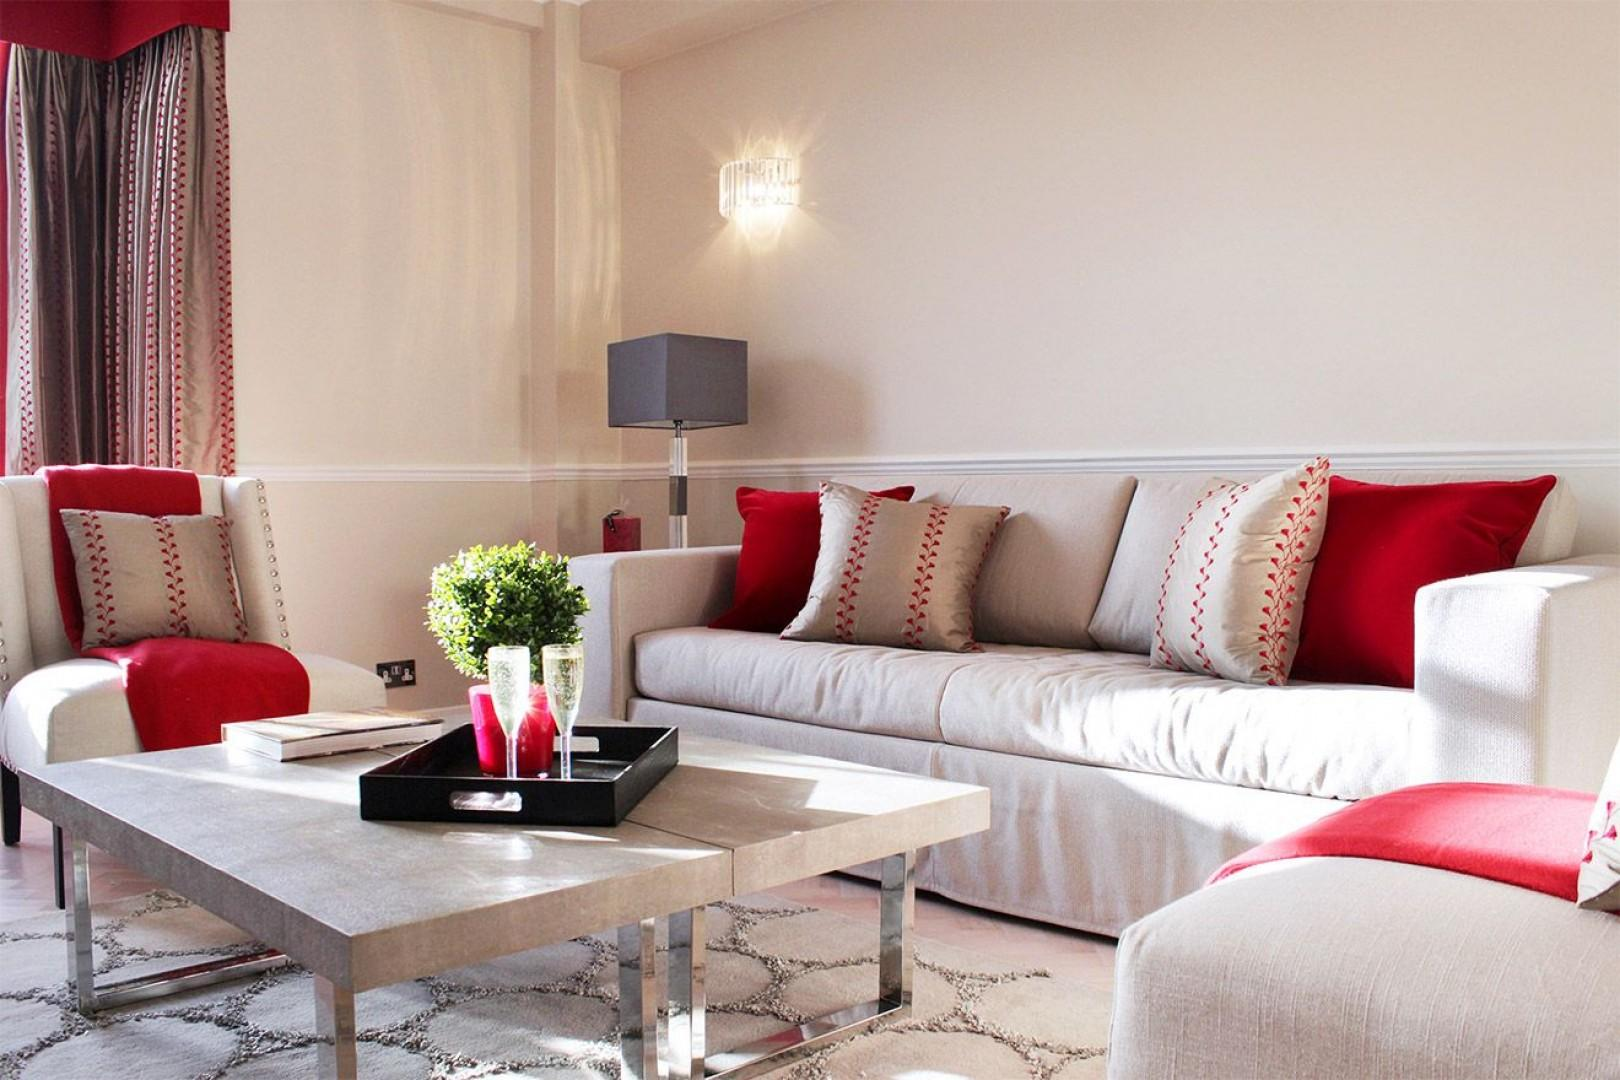 Relax in the comfortable seating area